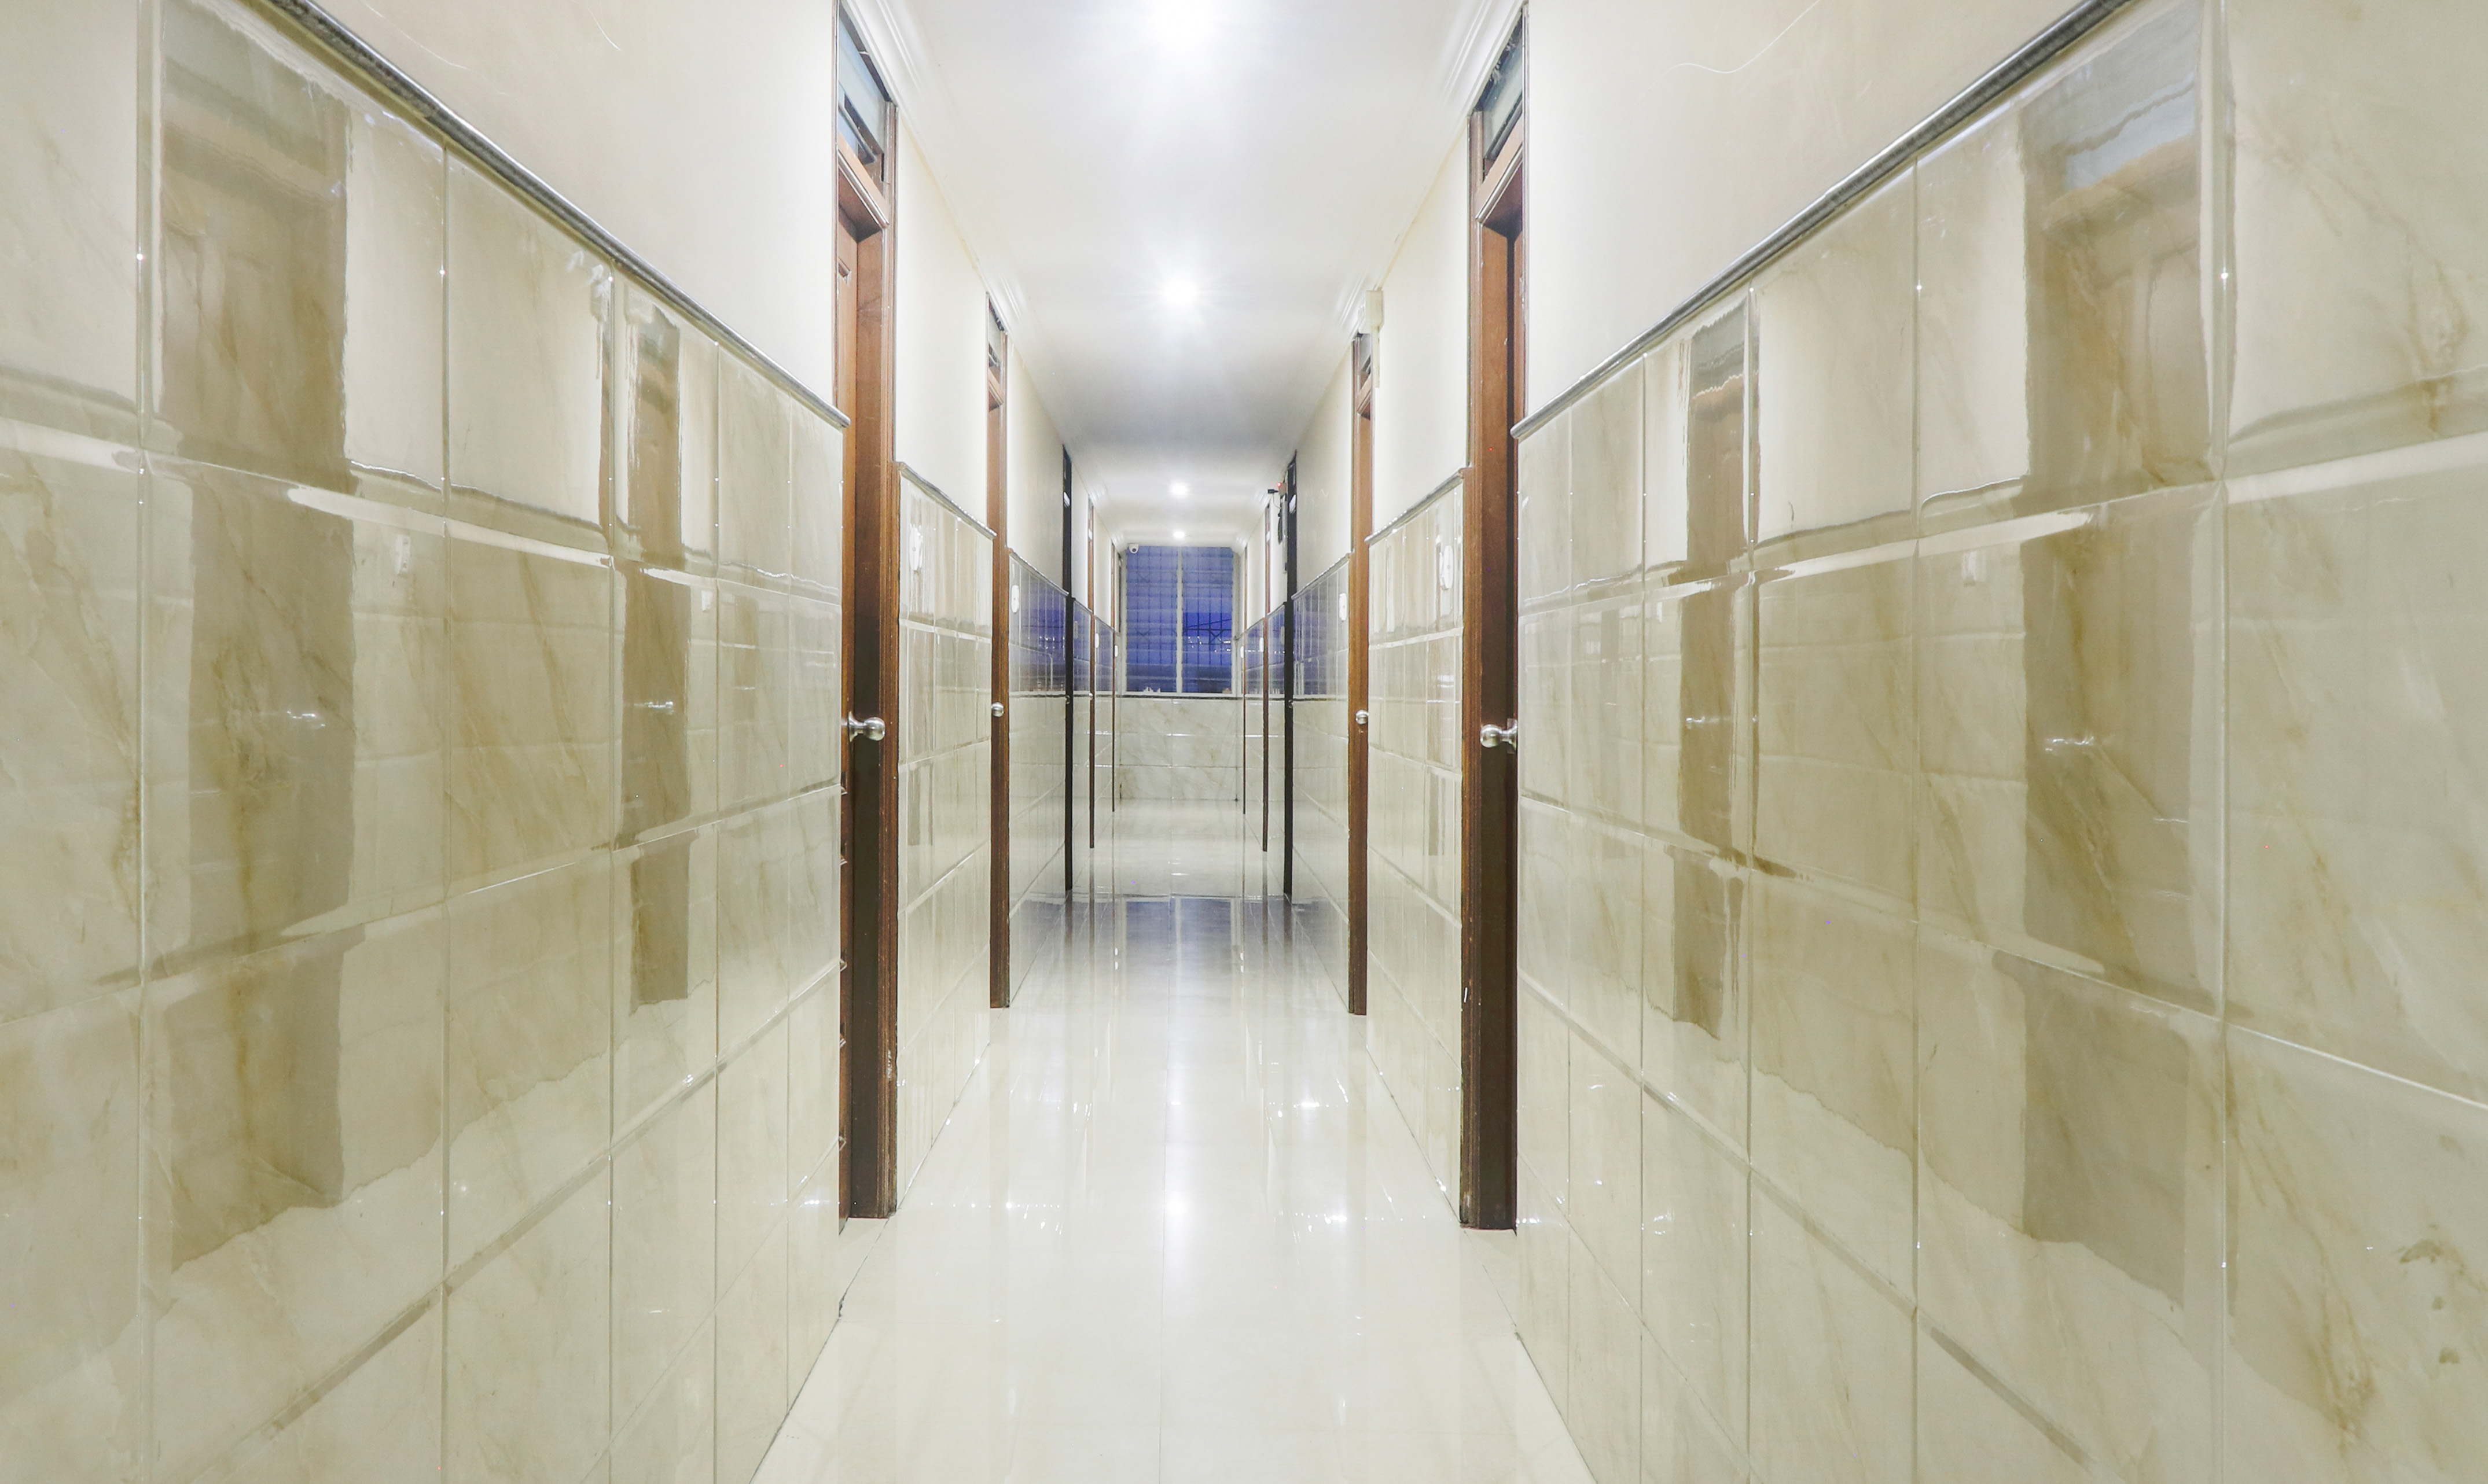 Travel Air Jc Road Bangalore Hotels Near Jc Road Bangalore Tariff 700 Lowest Price